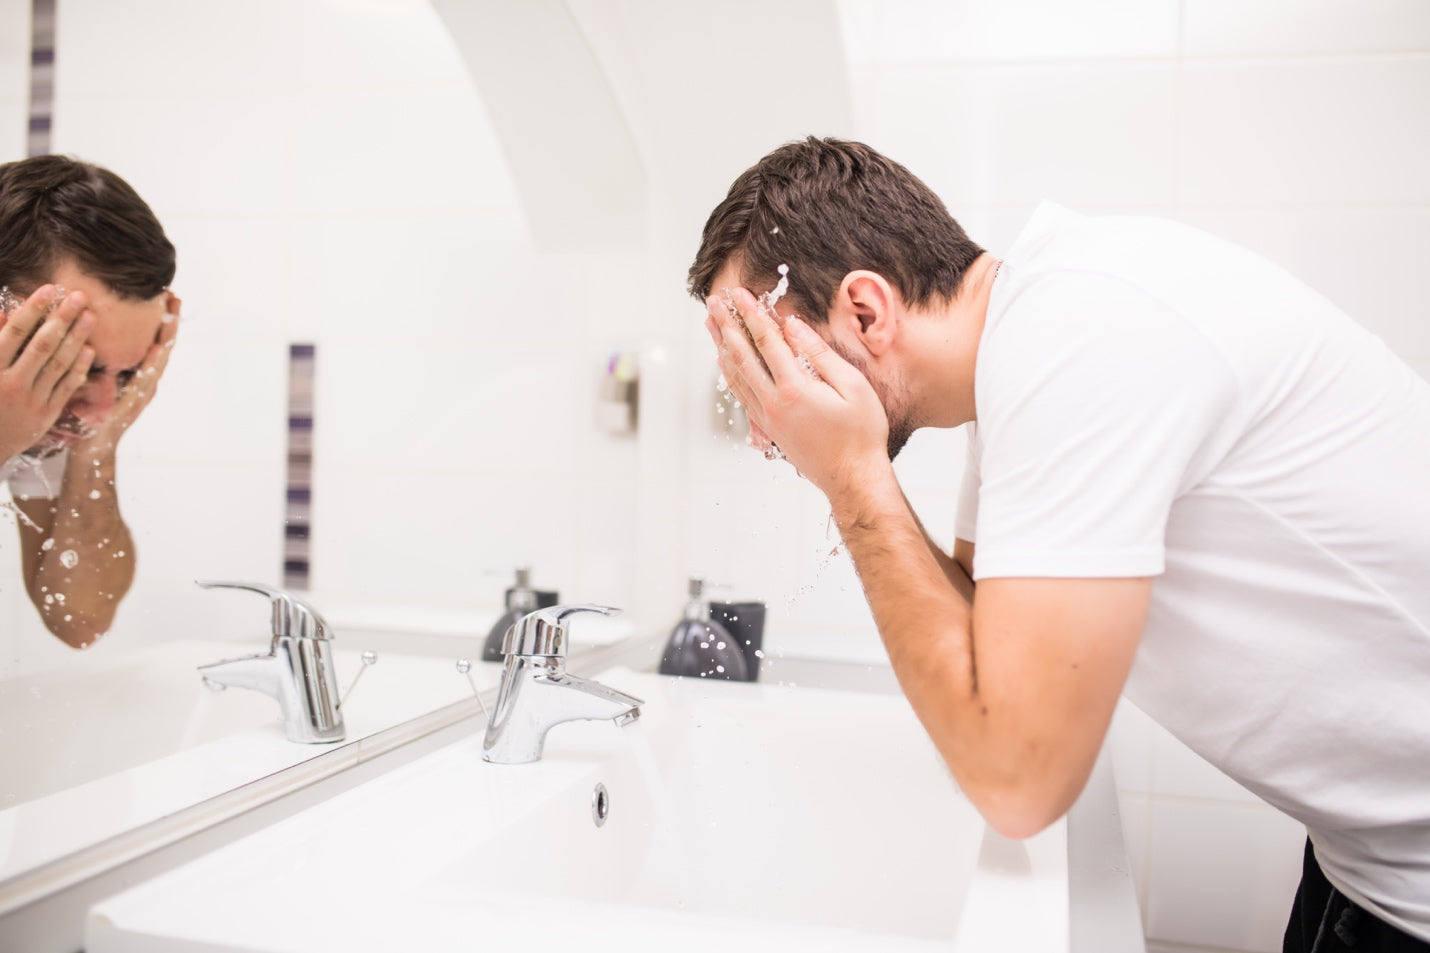 Man splashing water on his face over the bathroom sink